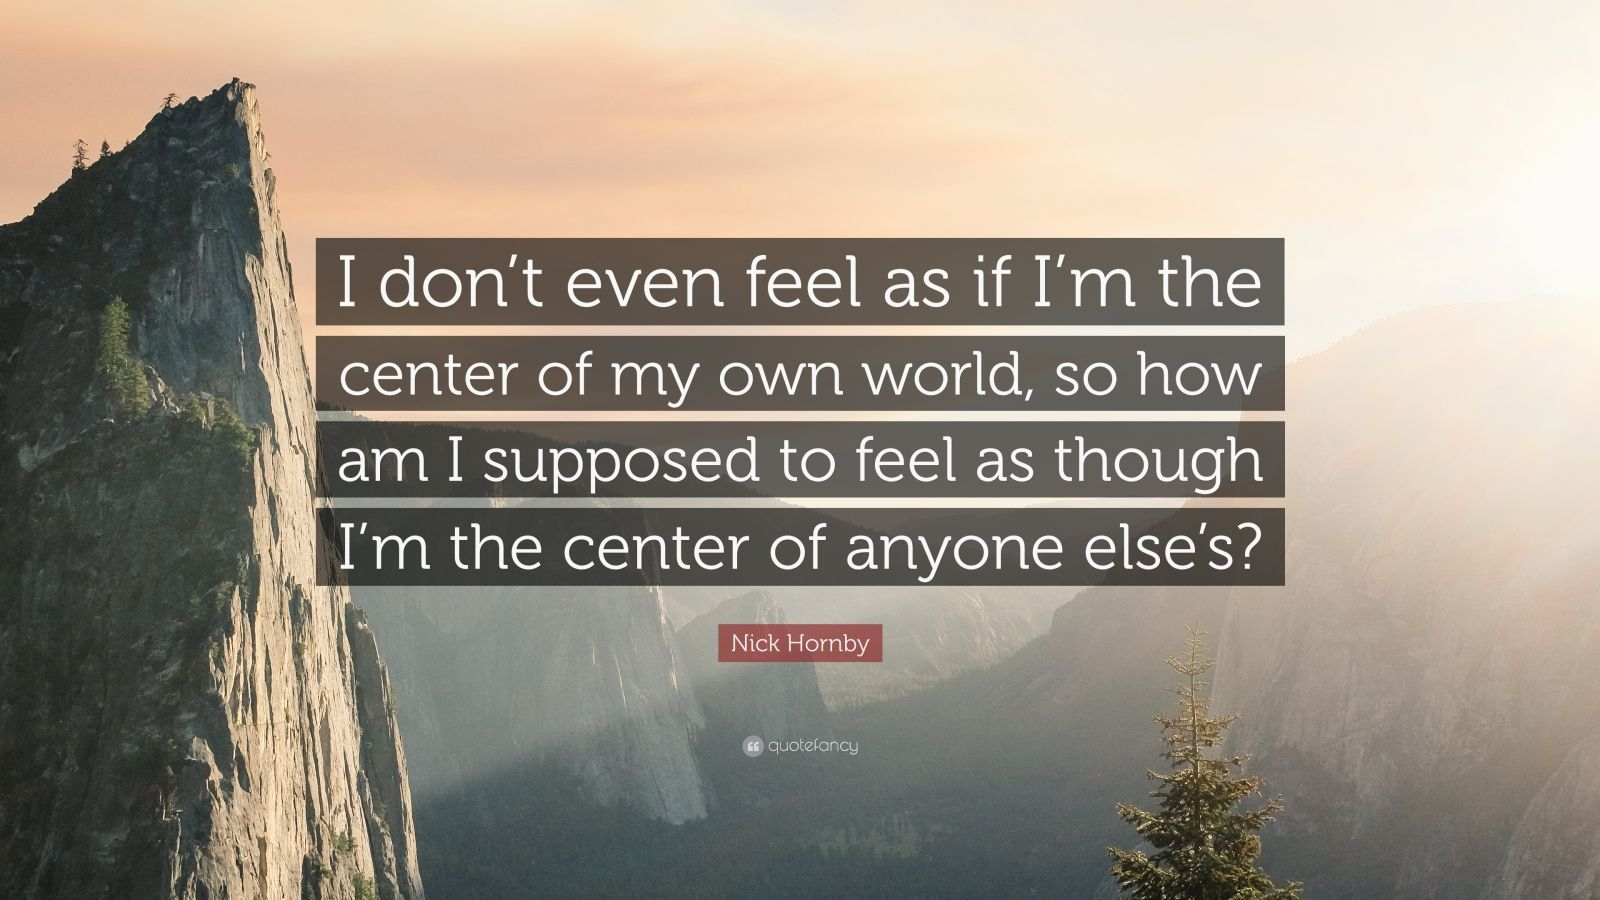 """Nick Hornby Quote: """"I don't even feel as if I'm the center of my own world, so how am I supposed to feel as though I'm the center of anyone else's?"""""""